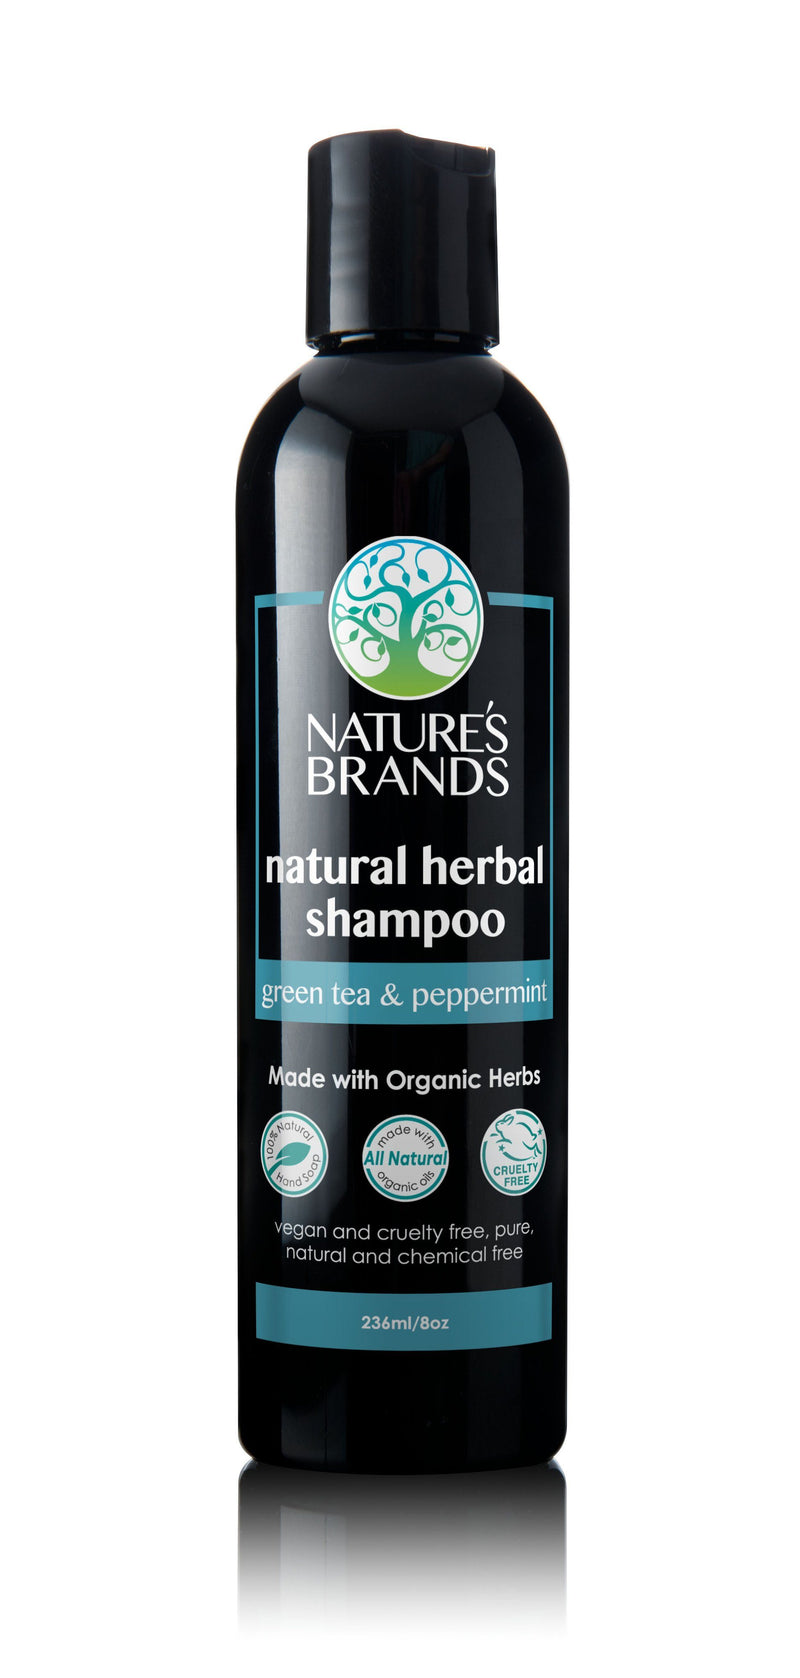 Herbal Choice Mari Natural Shampoo, Green Tea & Peppermint; Made with Organic - Herbal Choice Mari Natural Shampoo, Green Tea & Peppermint; Made with Organic - 8floz